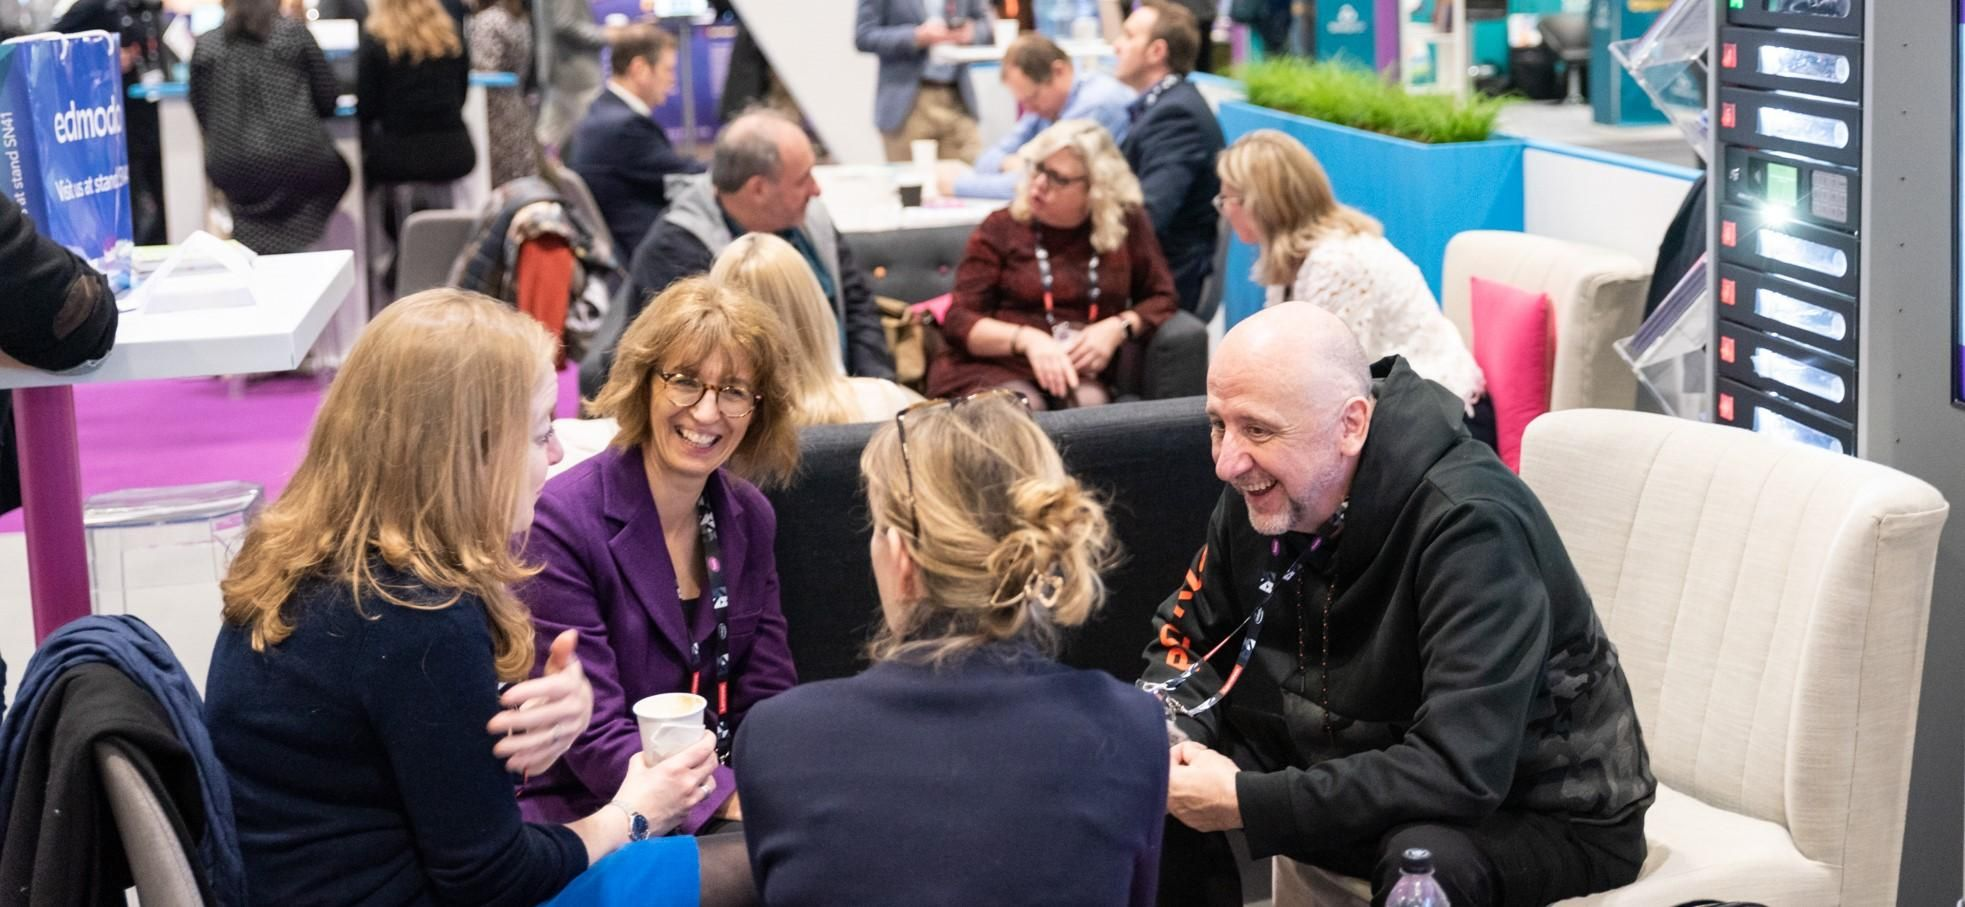 Are you interested in attending Bett as a VIP Guest?